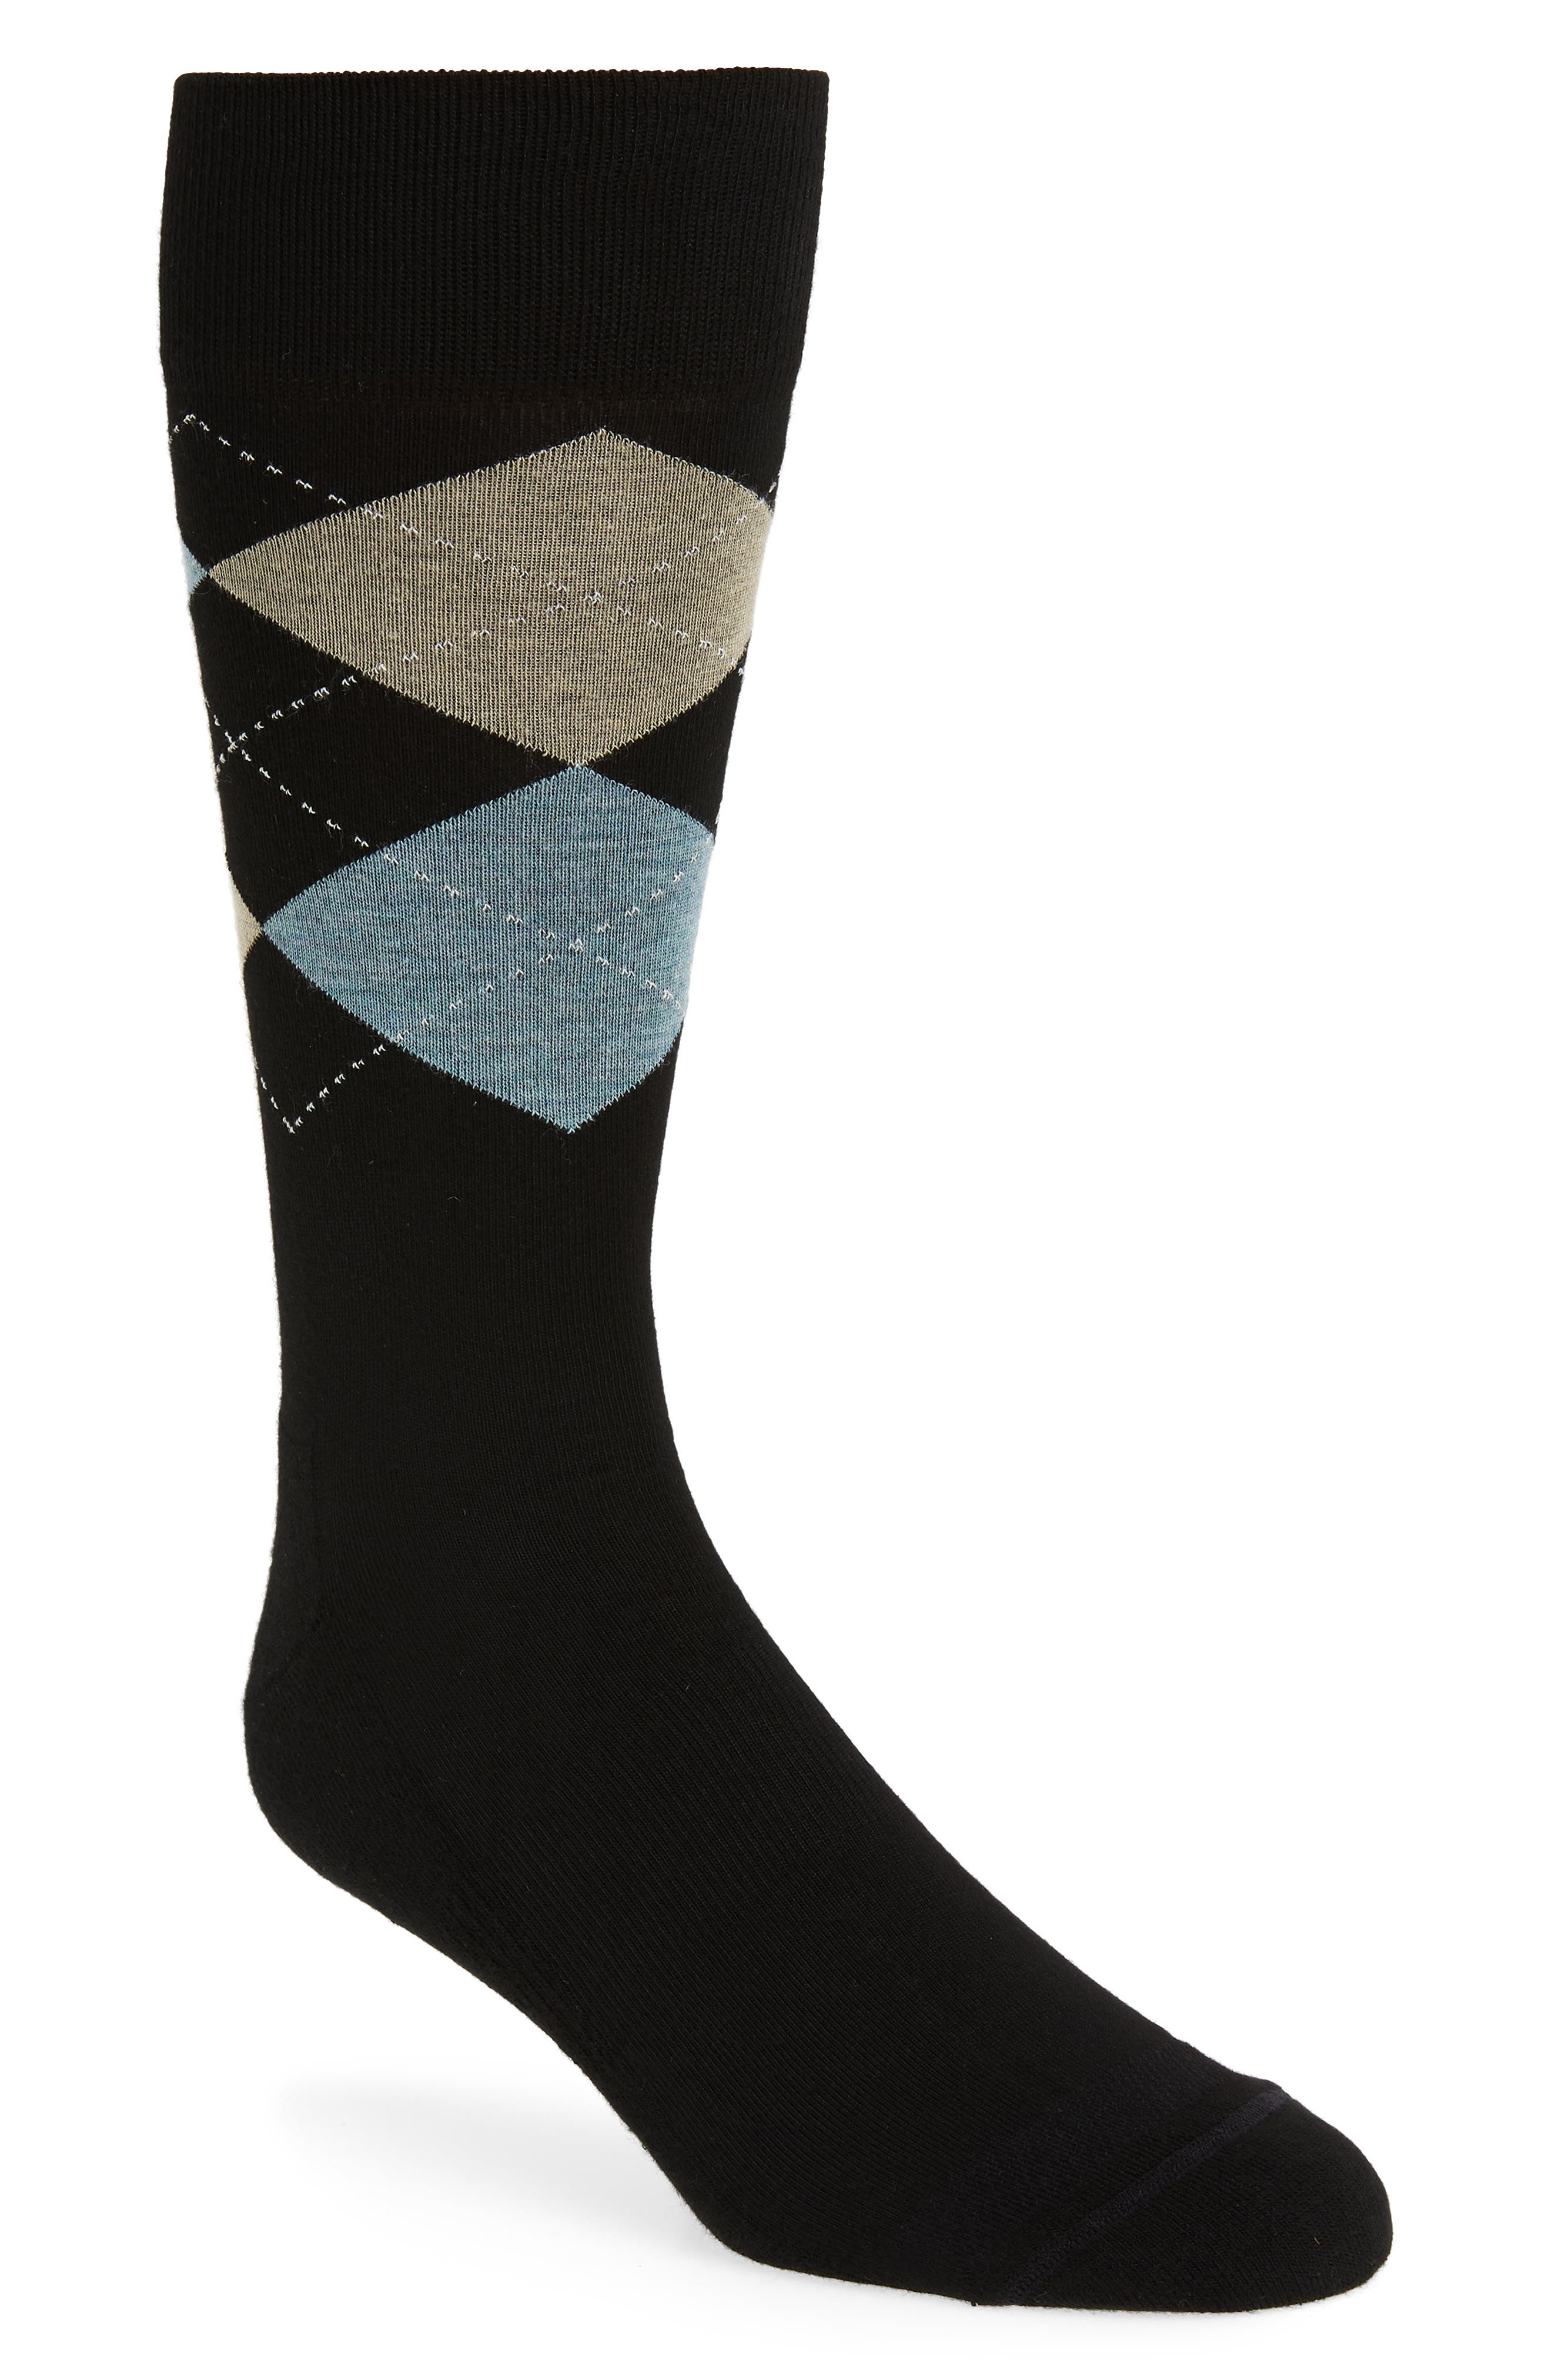 Argyle Dress Socks,                         Main,                         color, BLACK/ TAUPE